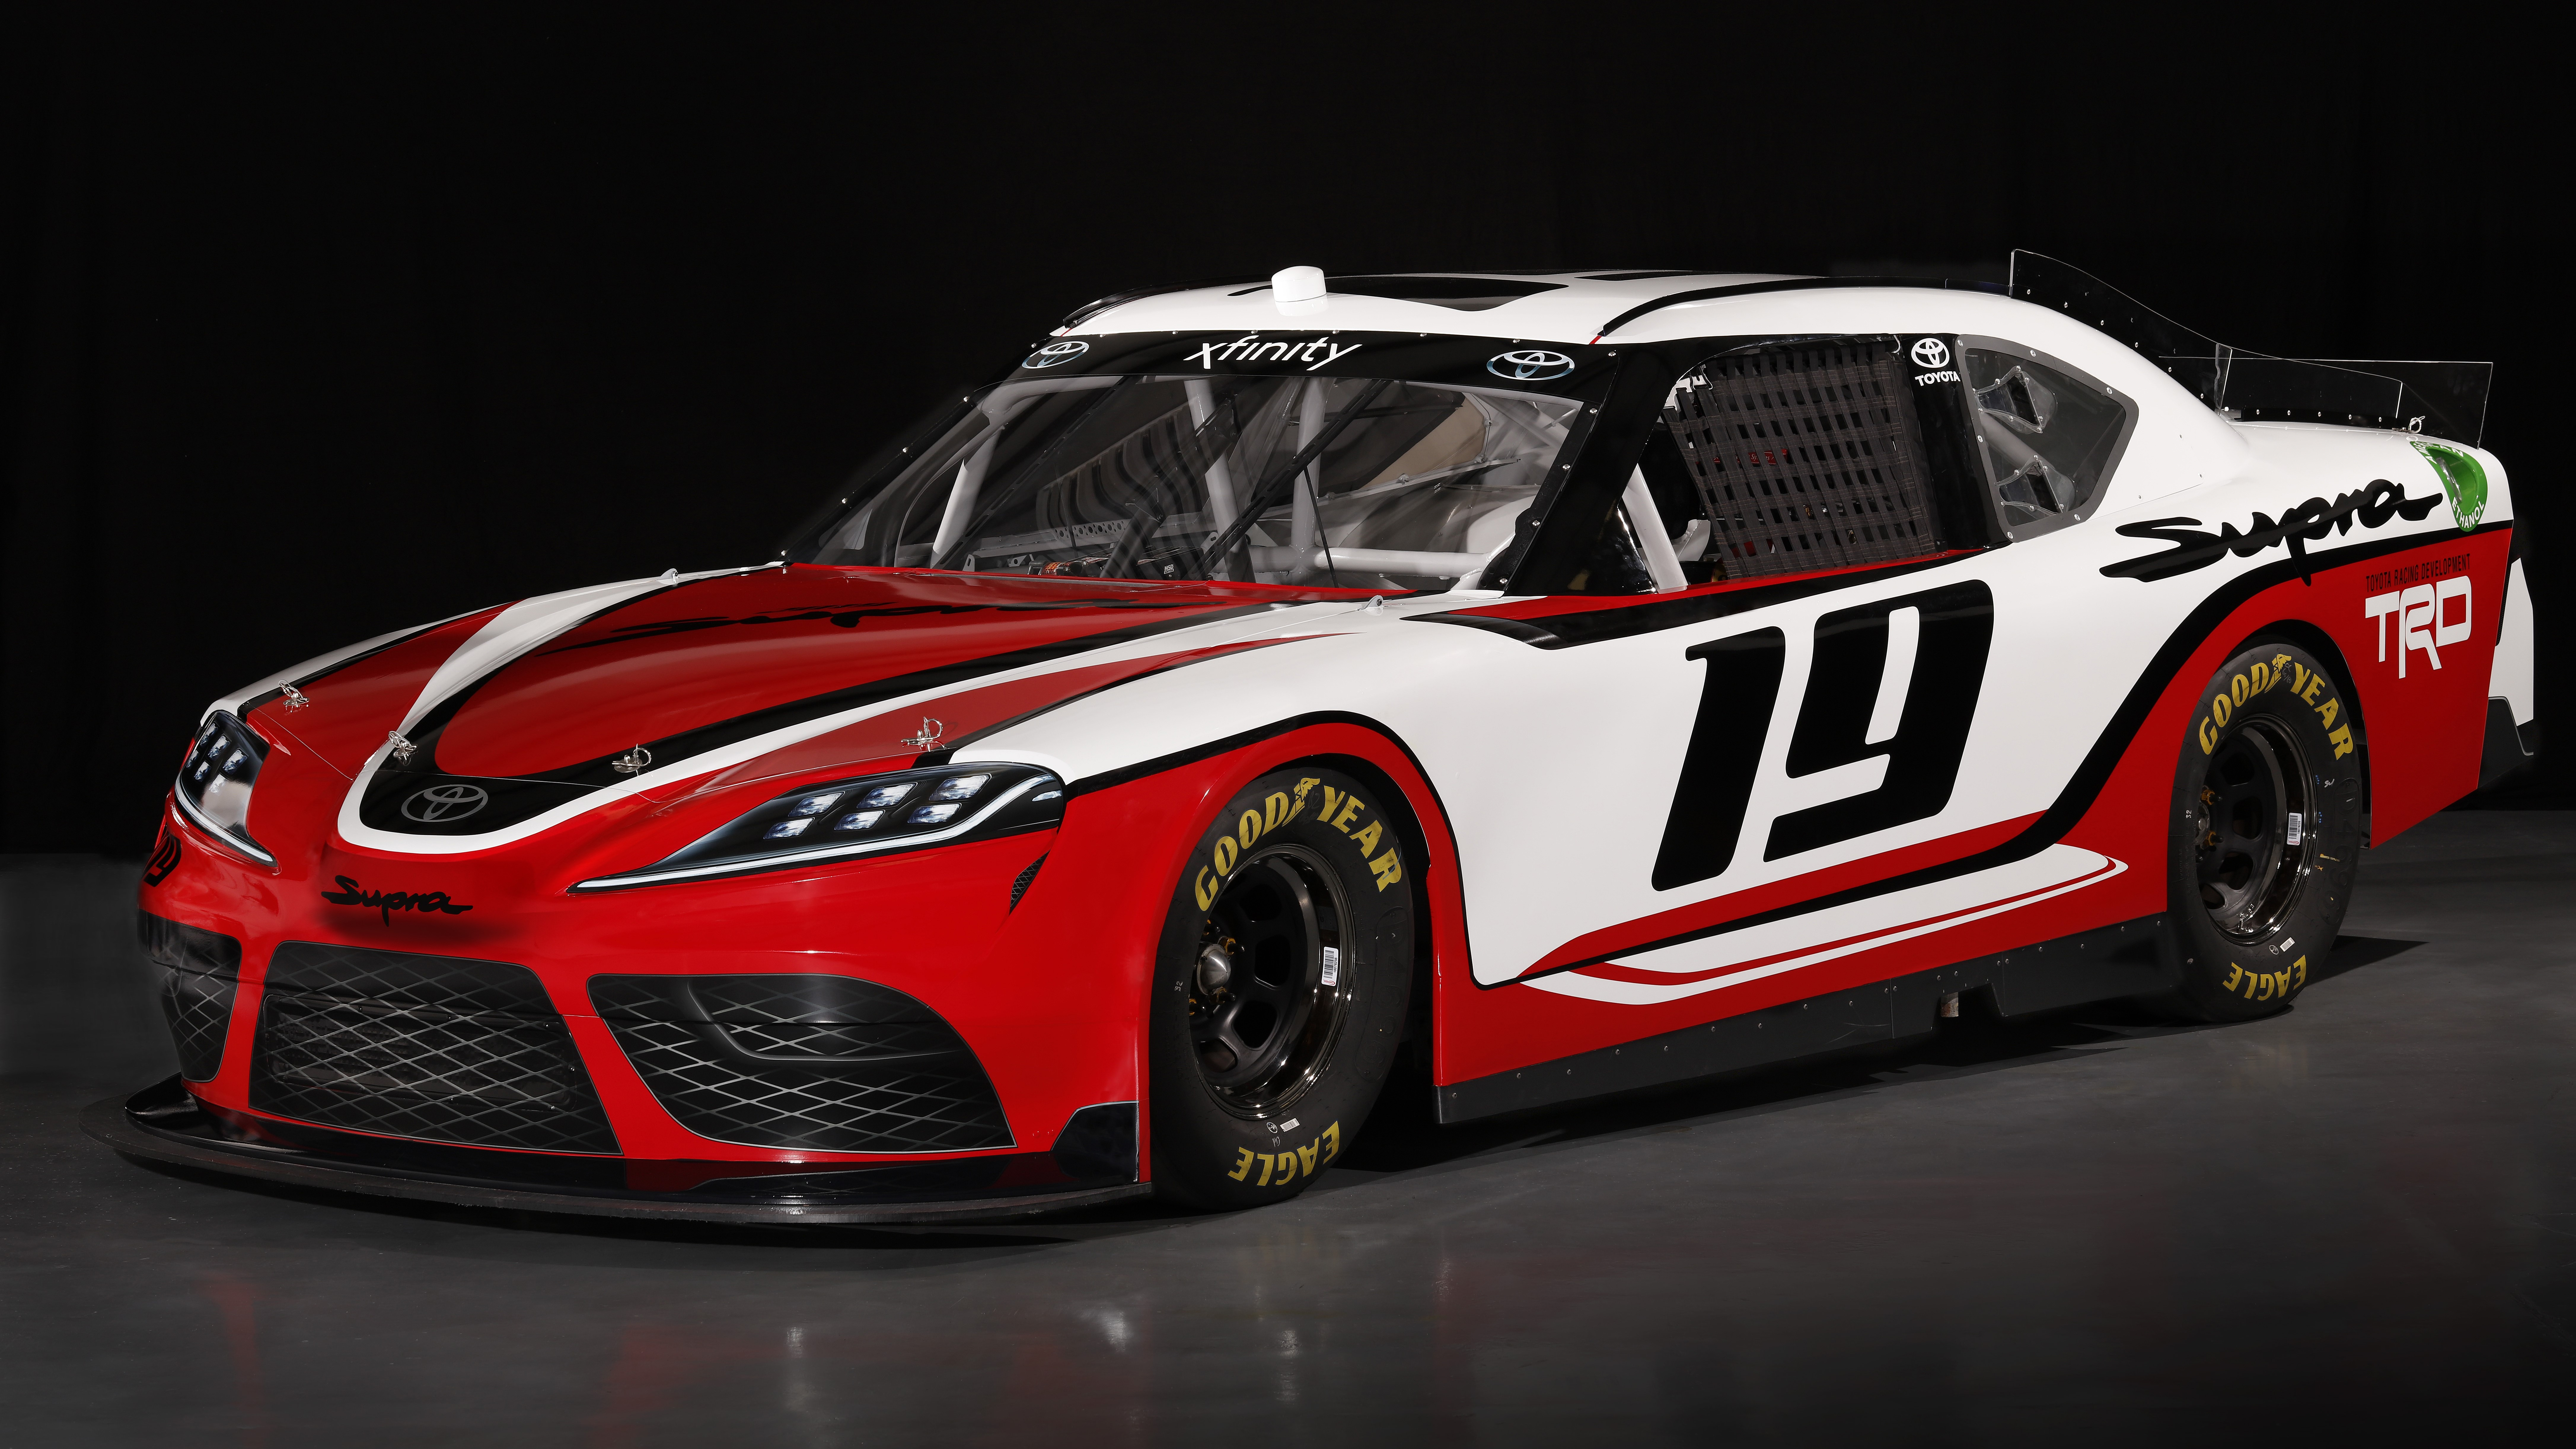 The Toyota Supra will compete in the NASCAR Xfinity Series.